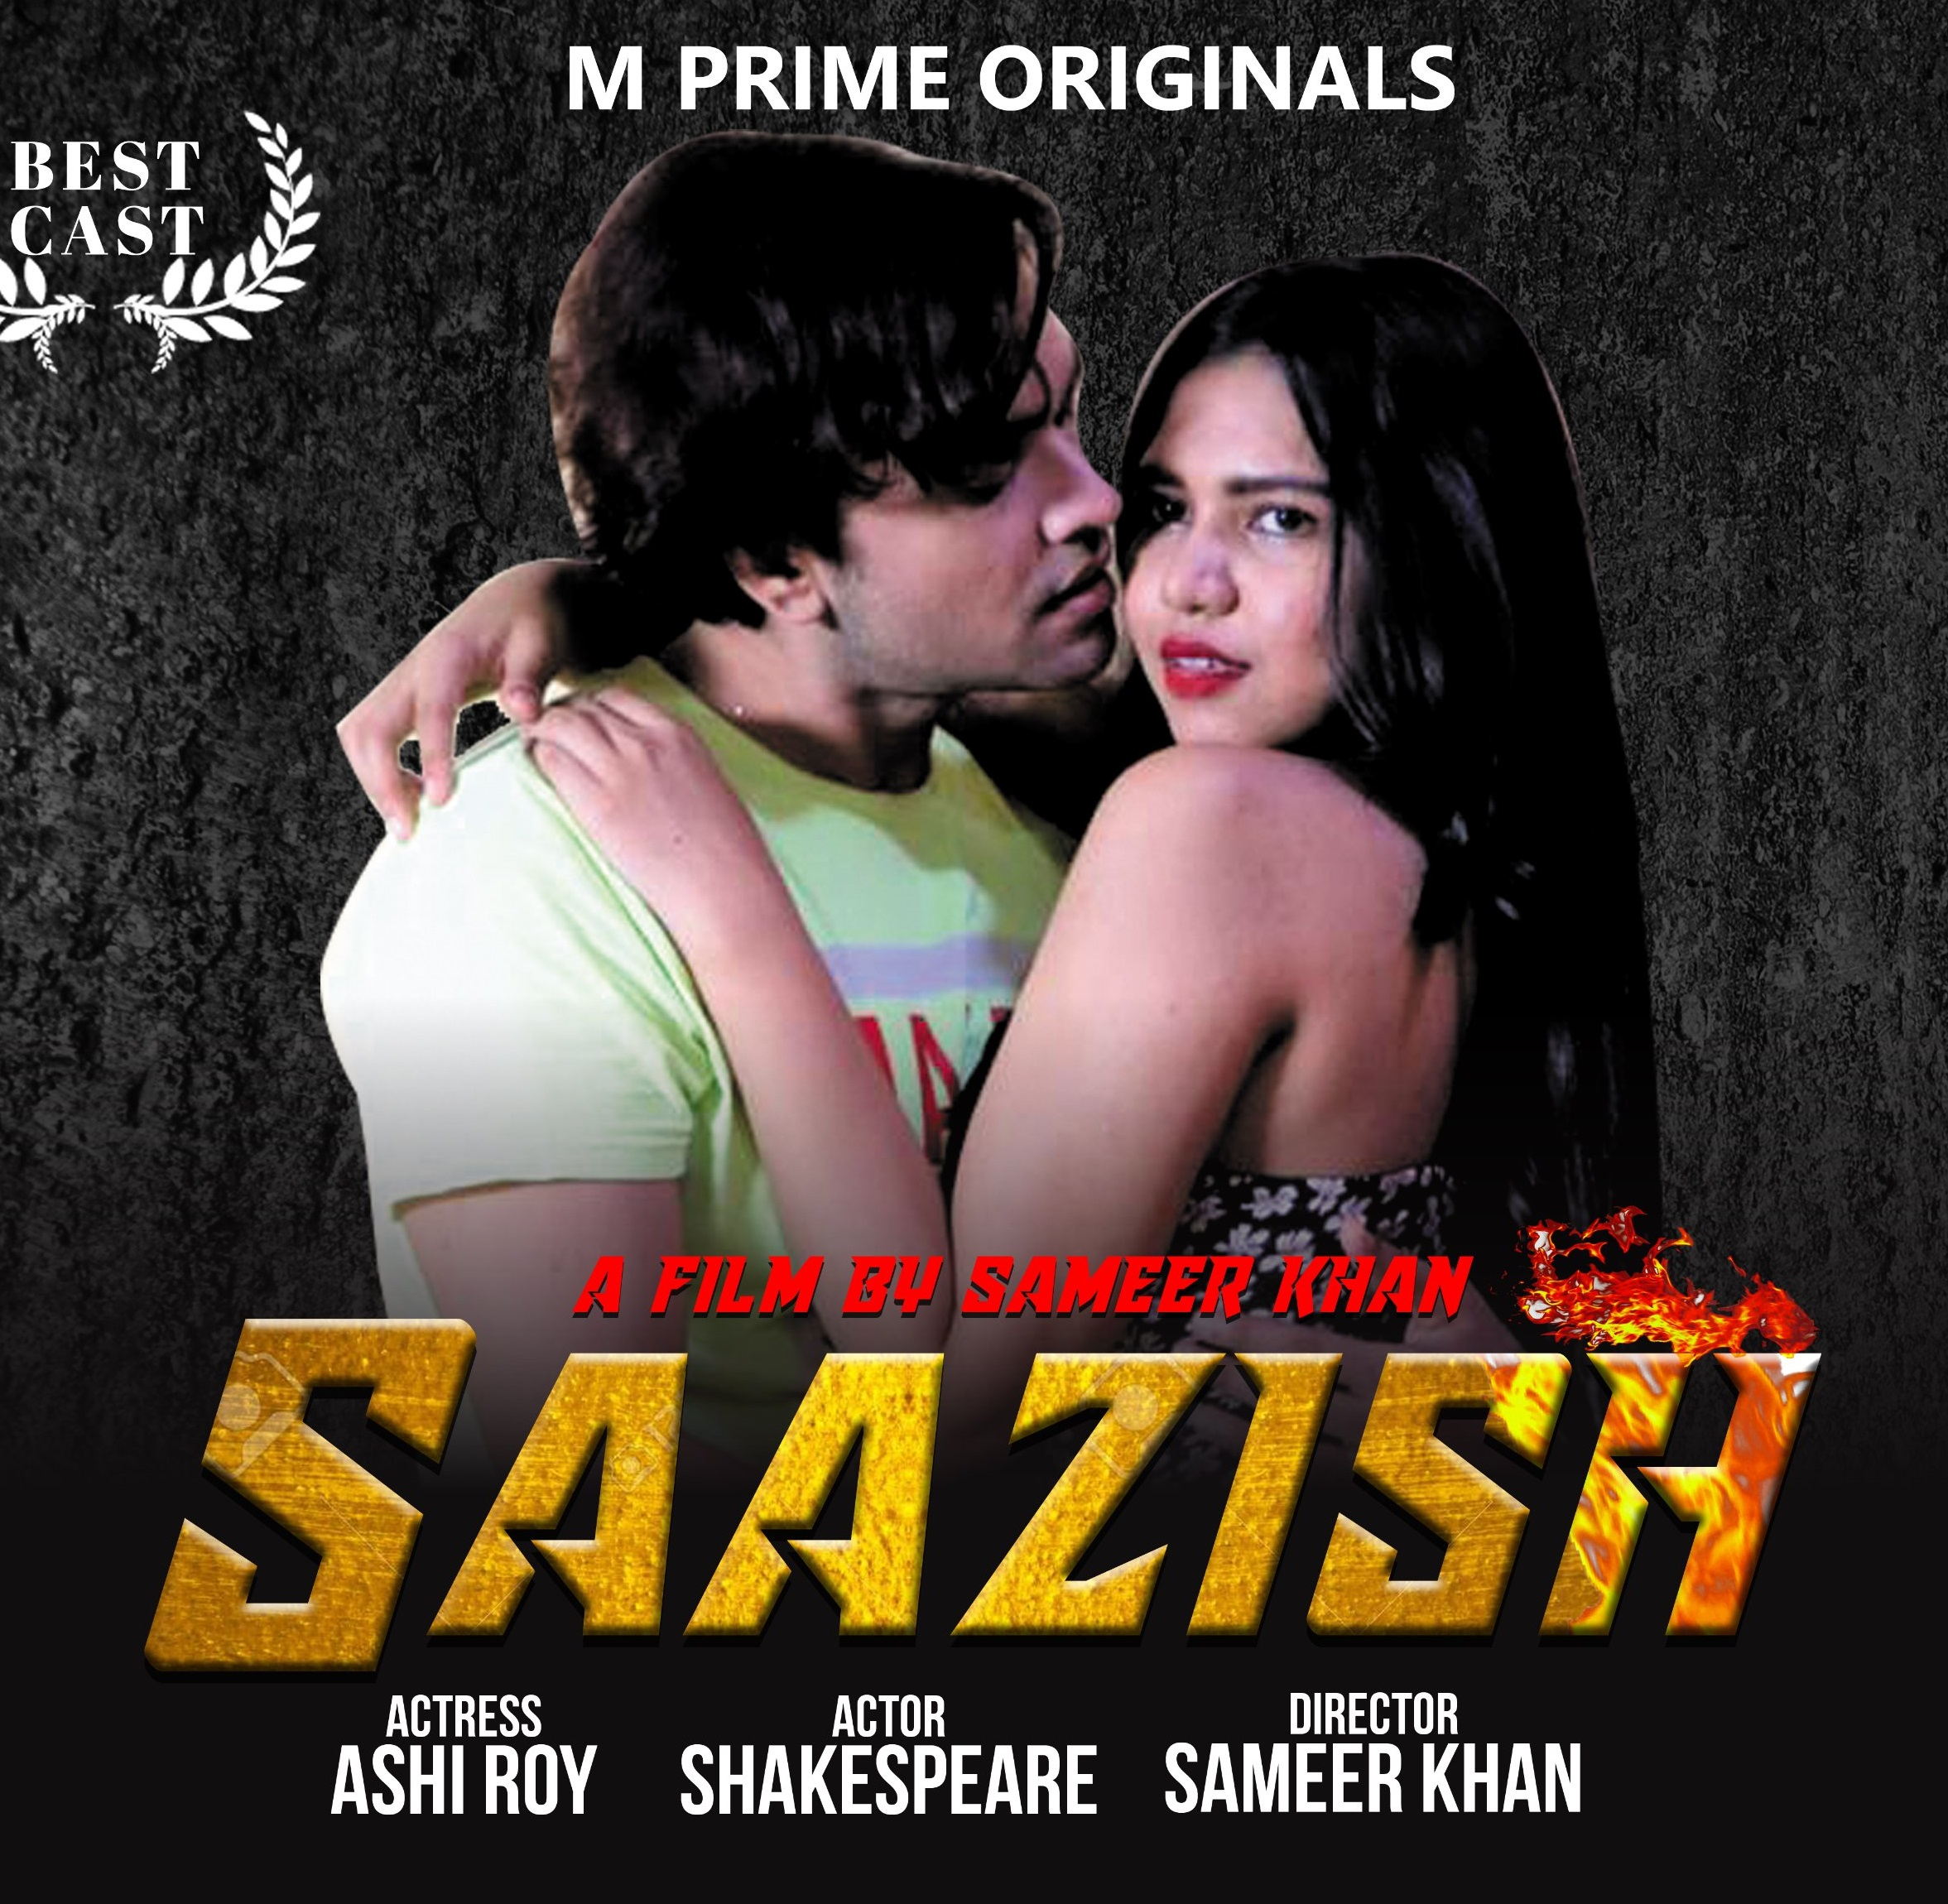 18+ Saazish 2020 MPrime Originals Hindi Short Film 720p HDRip 200MB x264 AAC